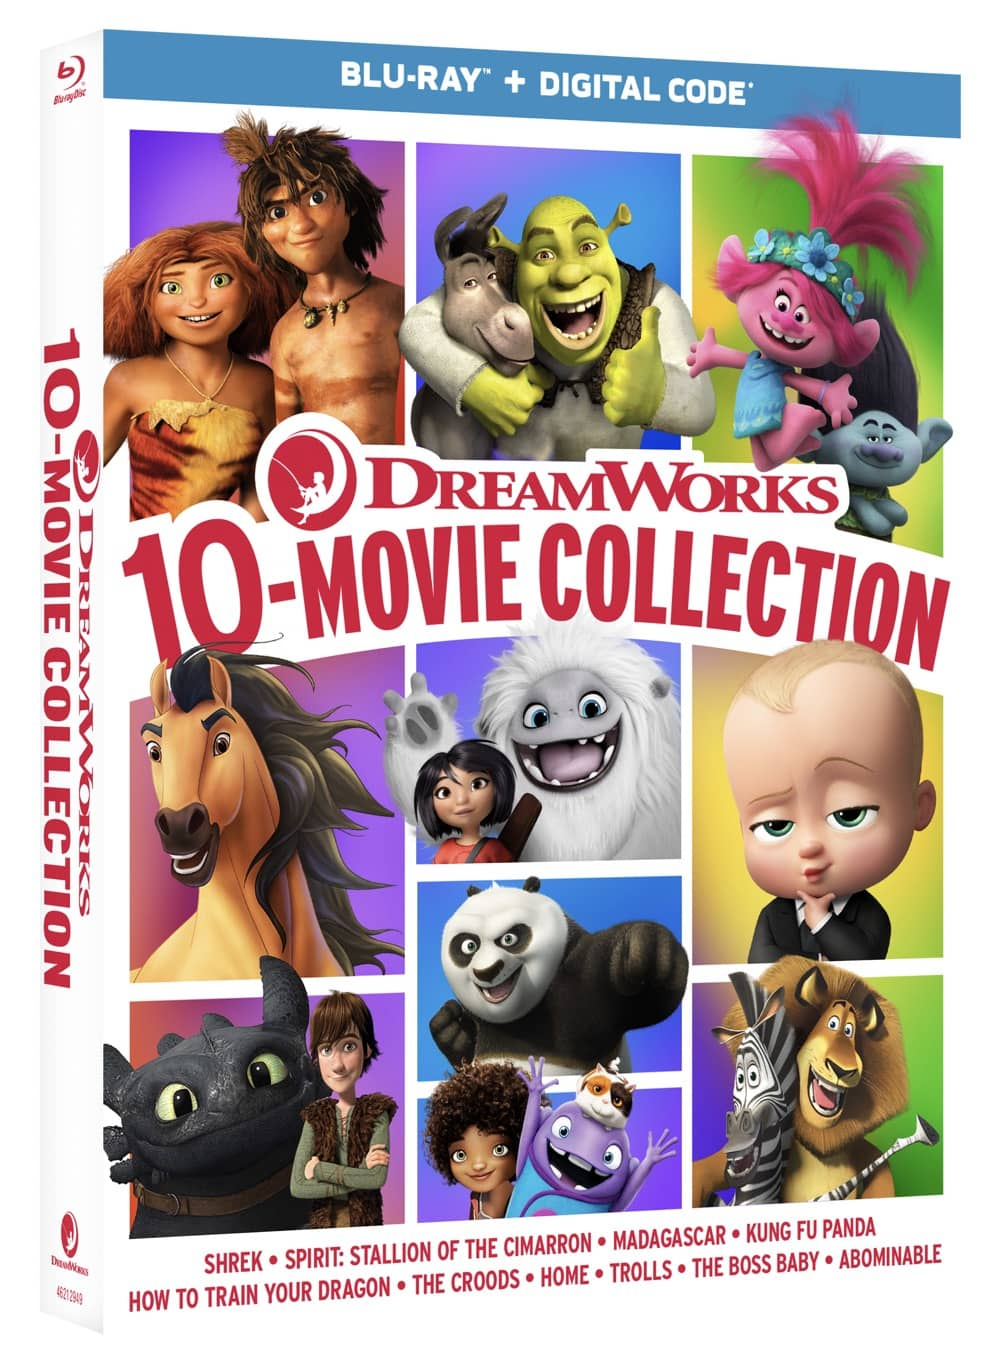 DreamWorks10MovieCollection BD 3D o card